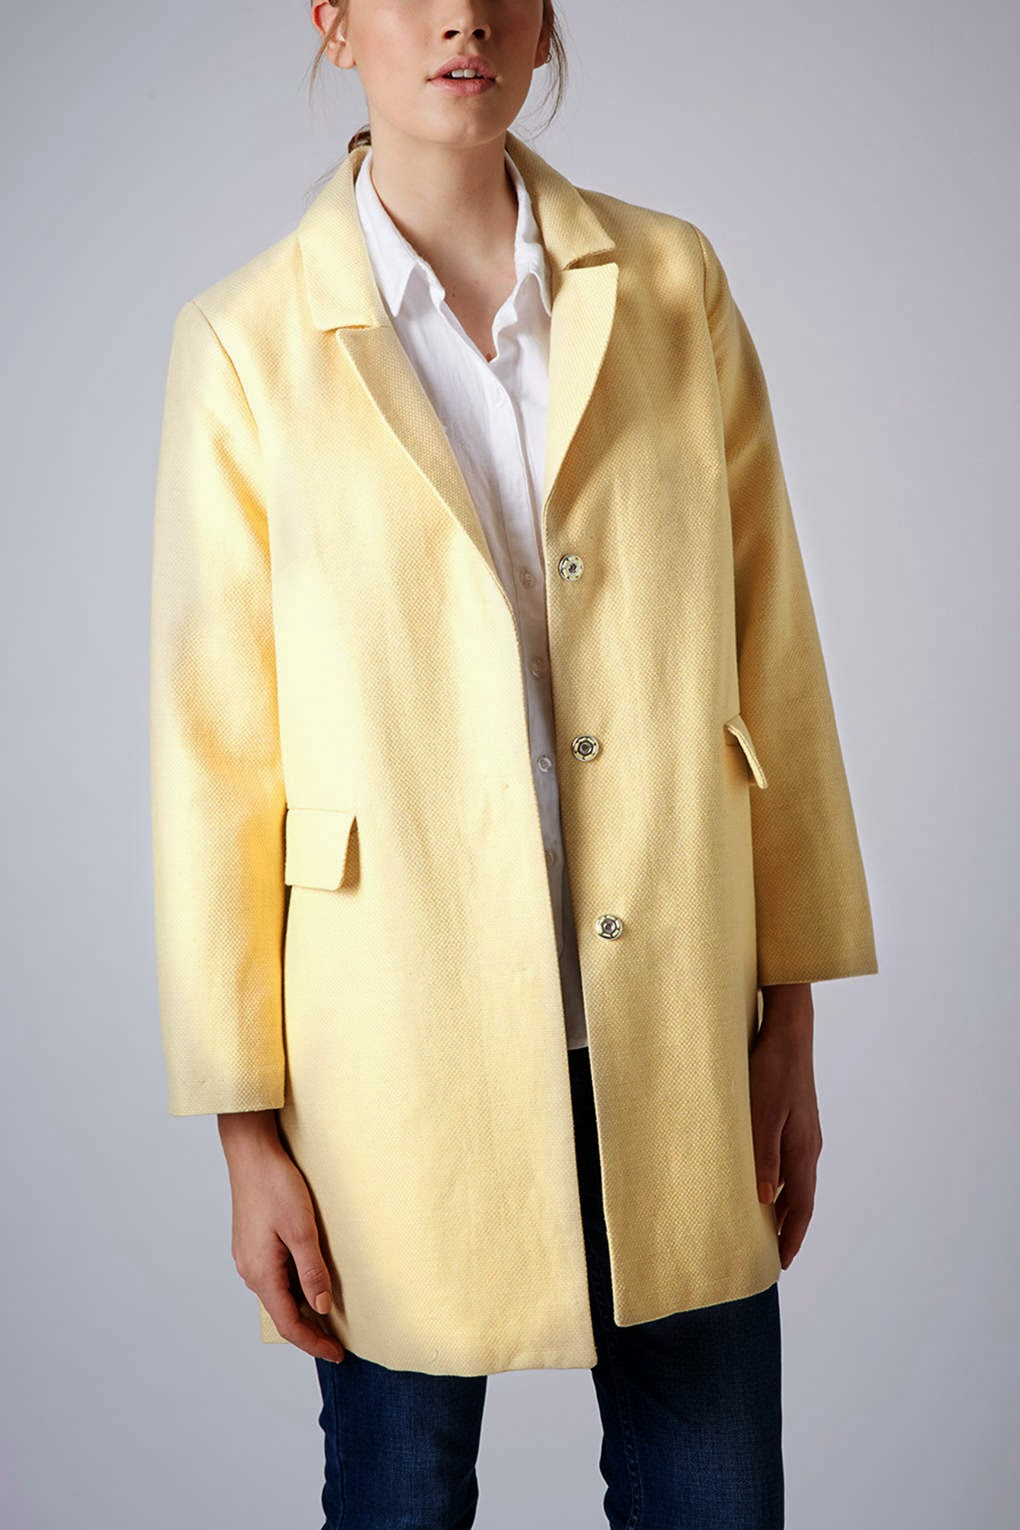 topshop lemon coat